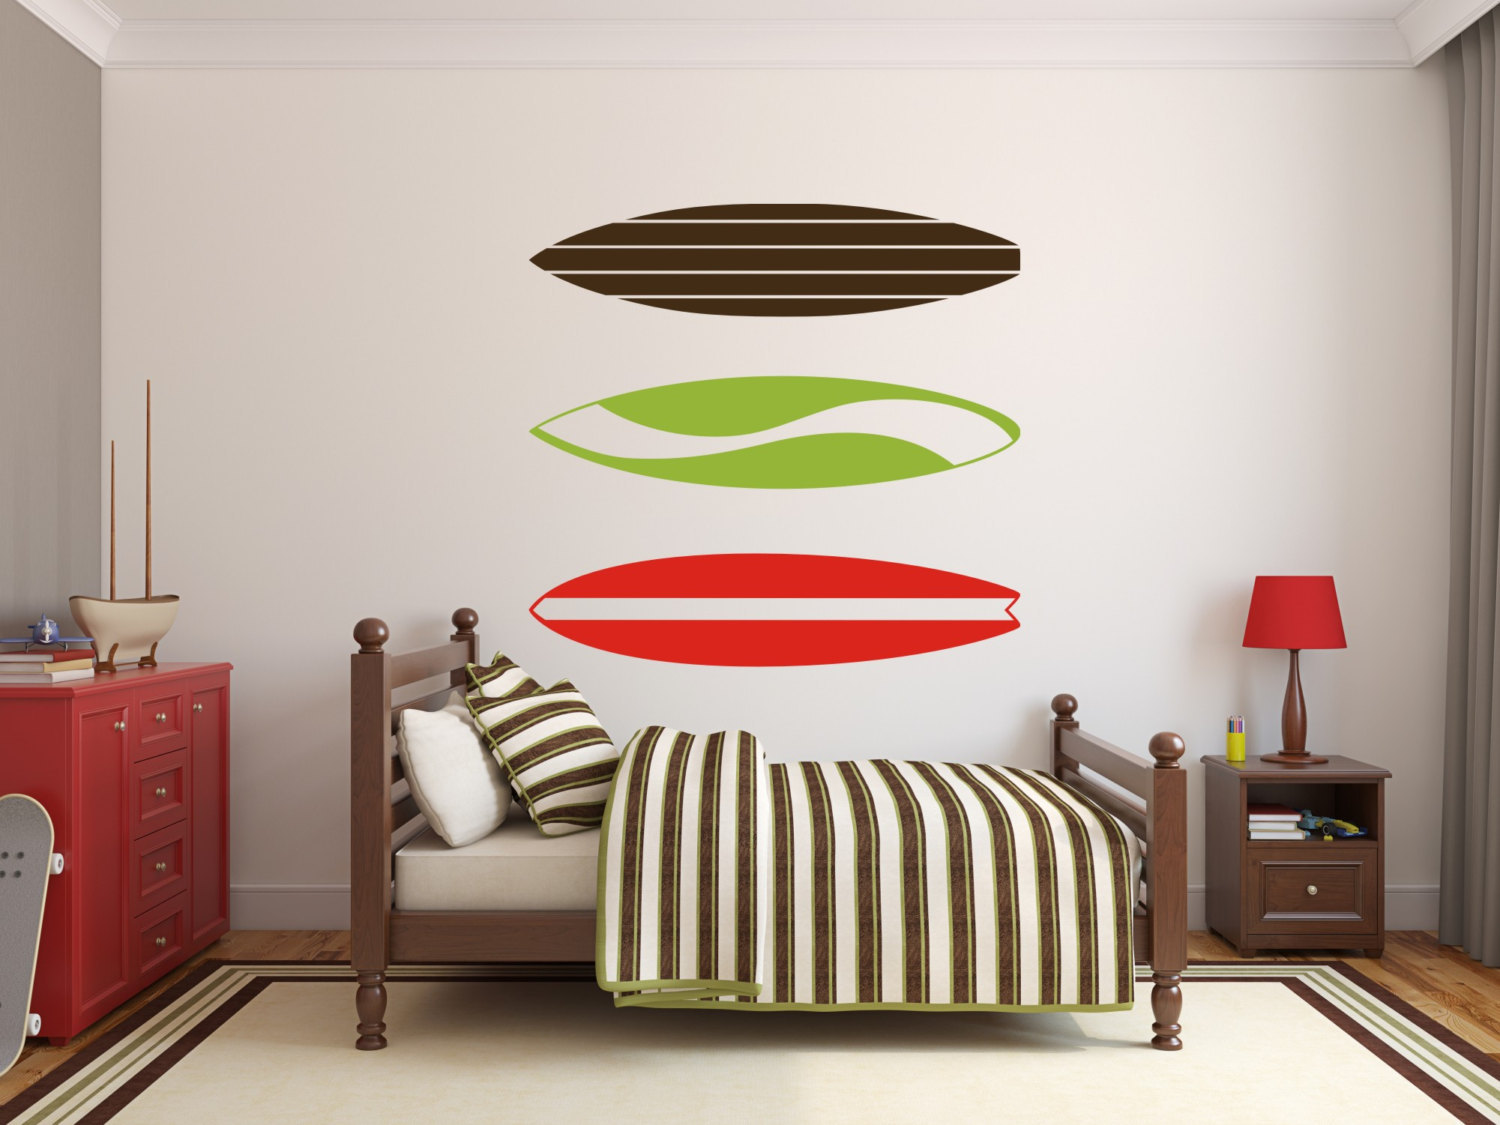 Kids Vinyl Decal Wall Art Wall Mural Graphics For Home Kids